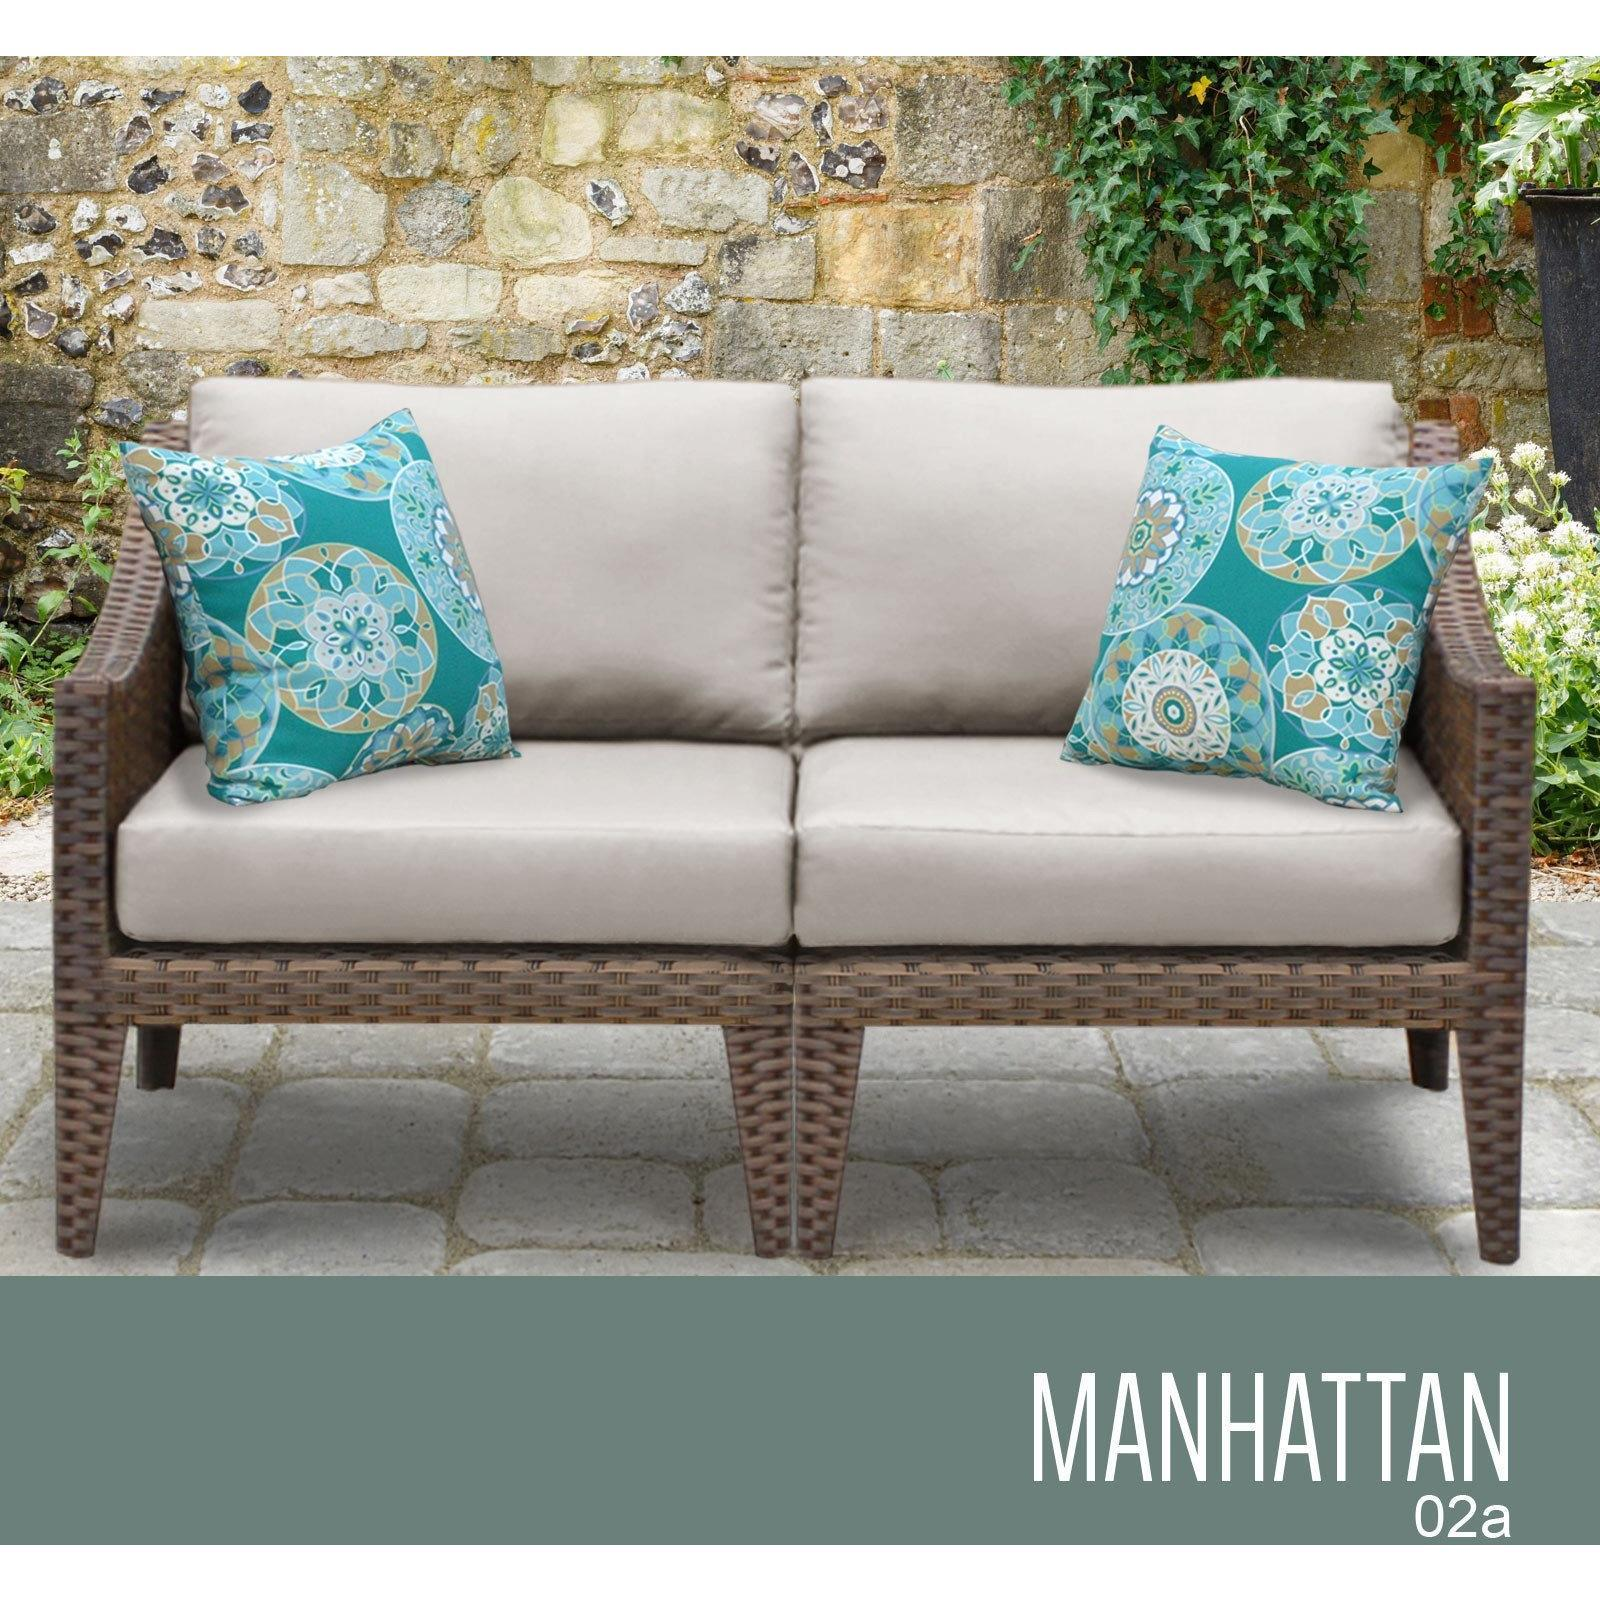 Manhattan 2 Piece Outdoor Wicker Patio Furniture Set 02a